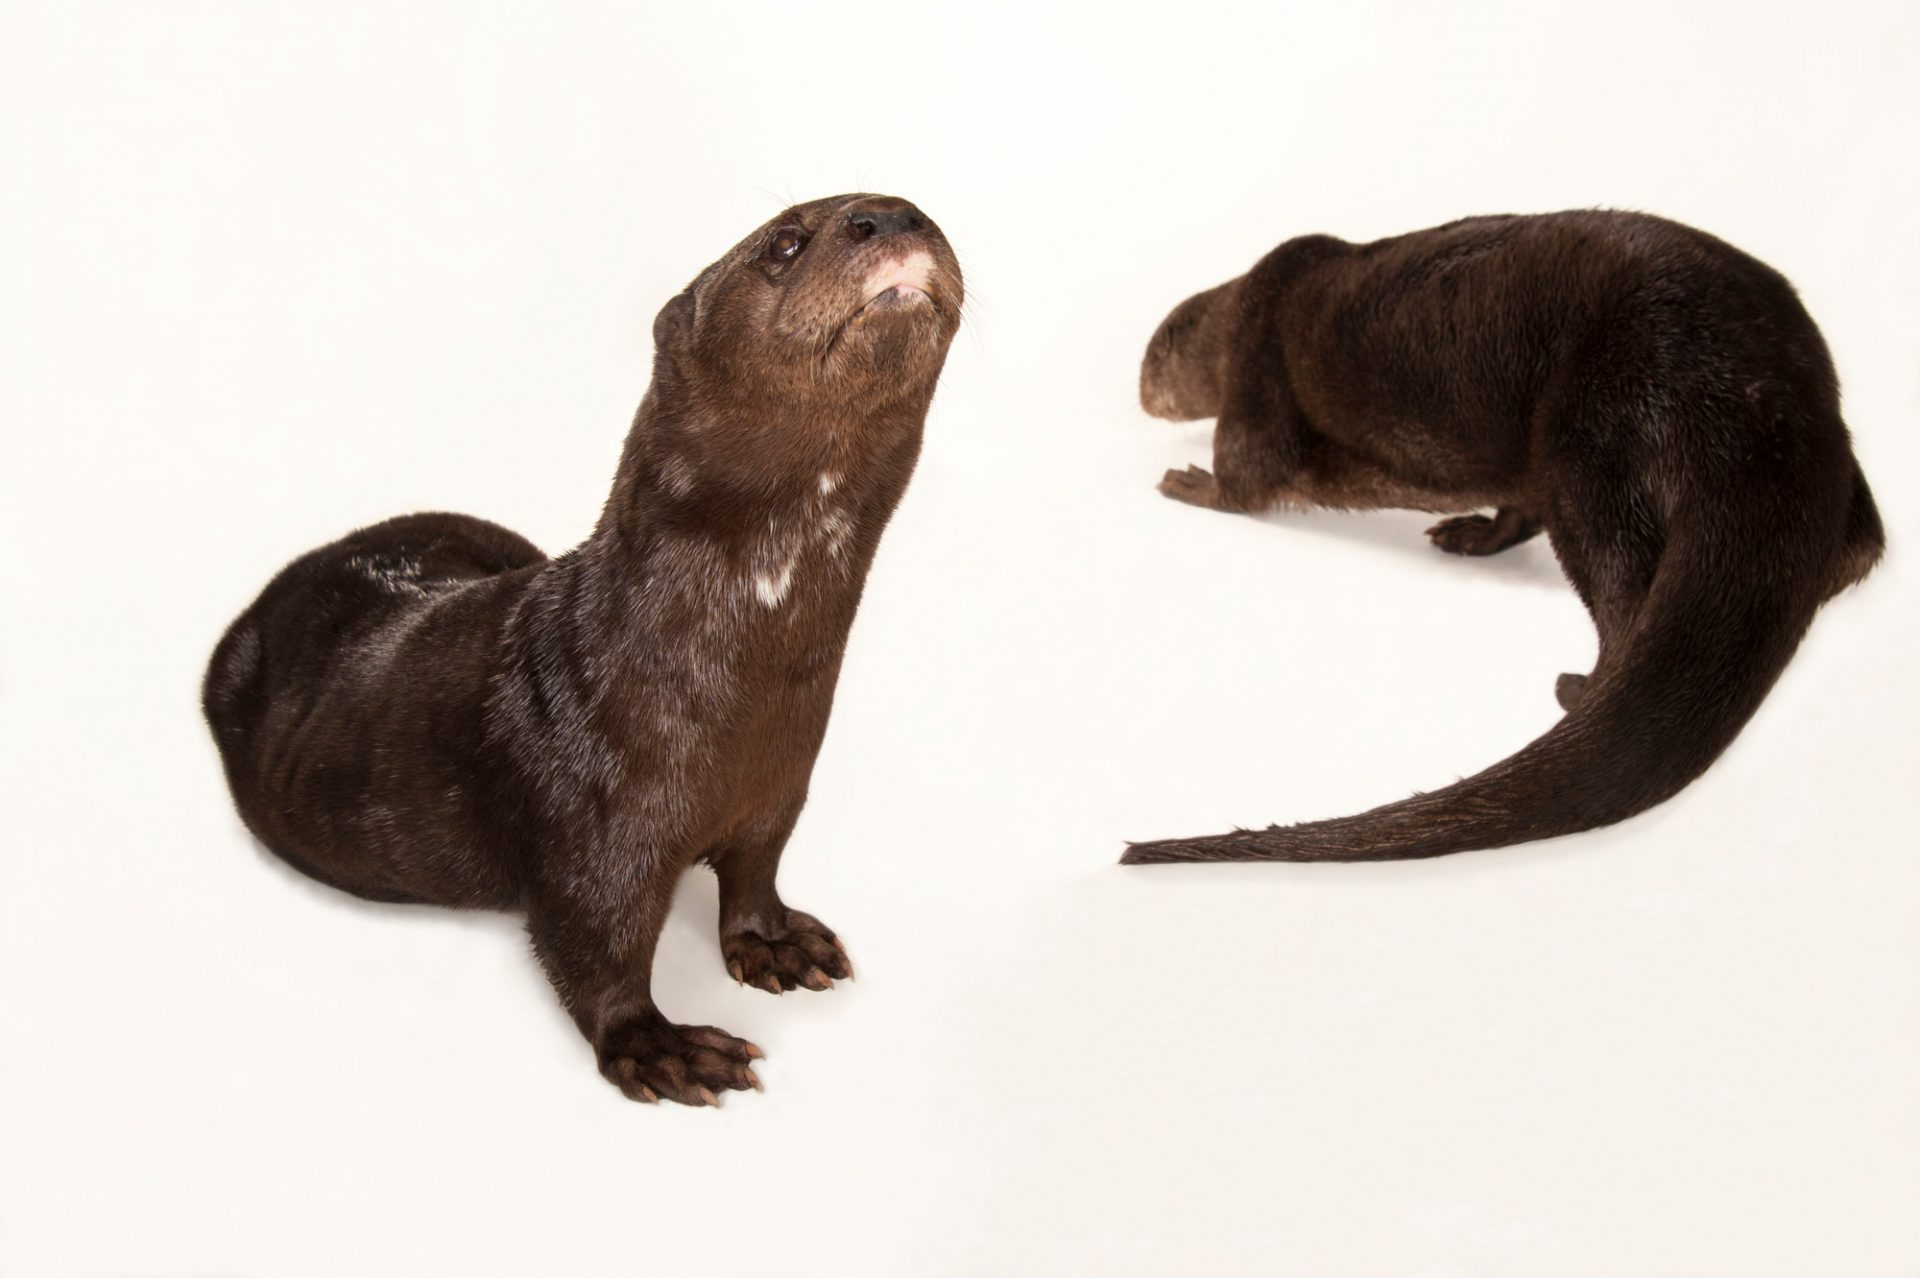 Spotted-necked otters (Hydrictis maculicollis) at the Omaha Zoo.